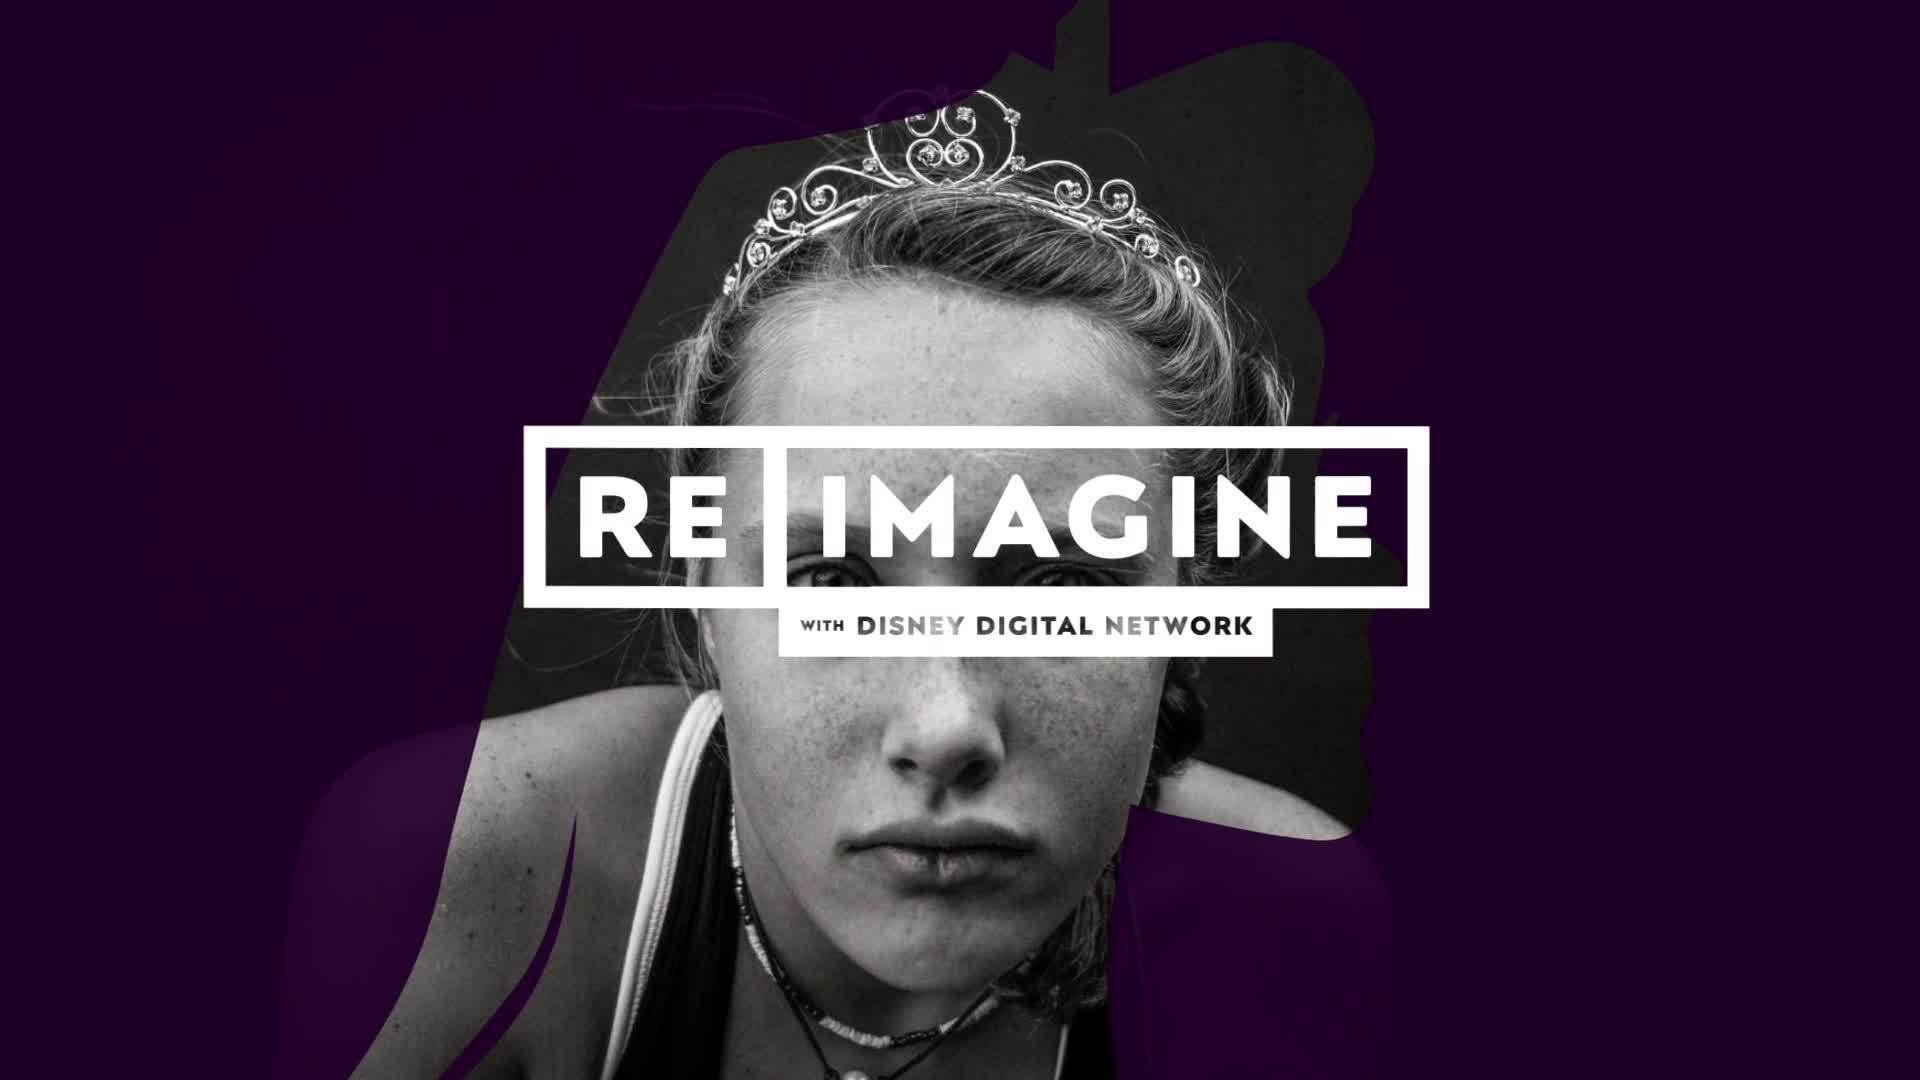 Reimagine with Disney Digital Network